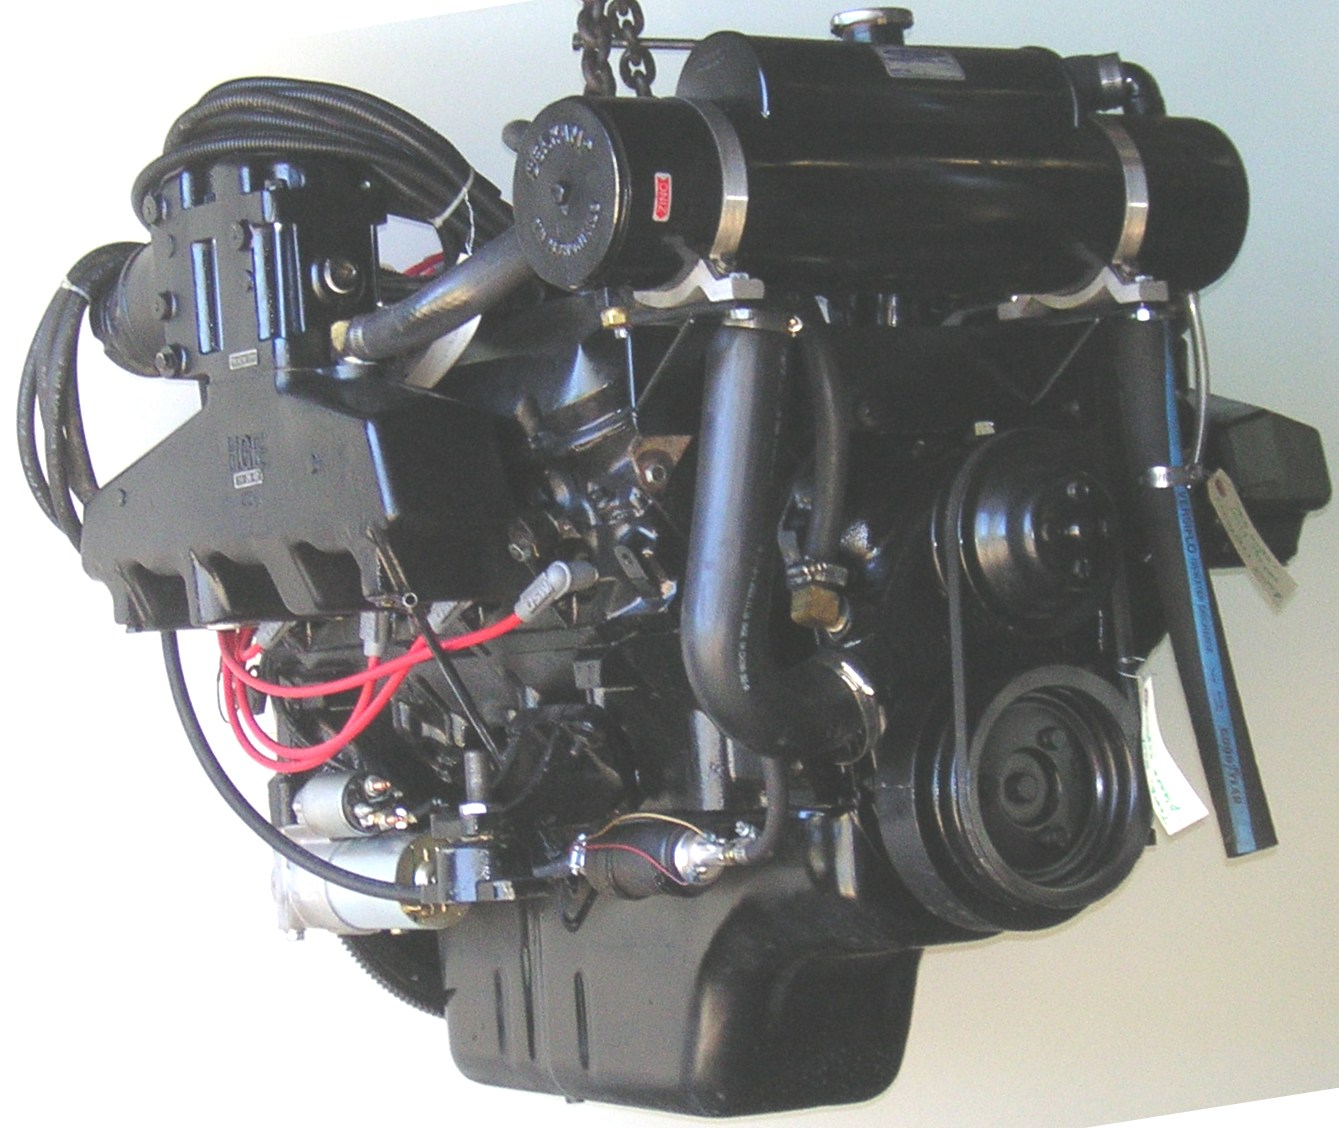 hight resolution of marine remanufactured engines inboard rh remanufactured com 5 7 350 engine diagram 5 7 350 engine